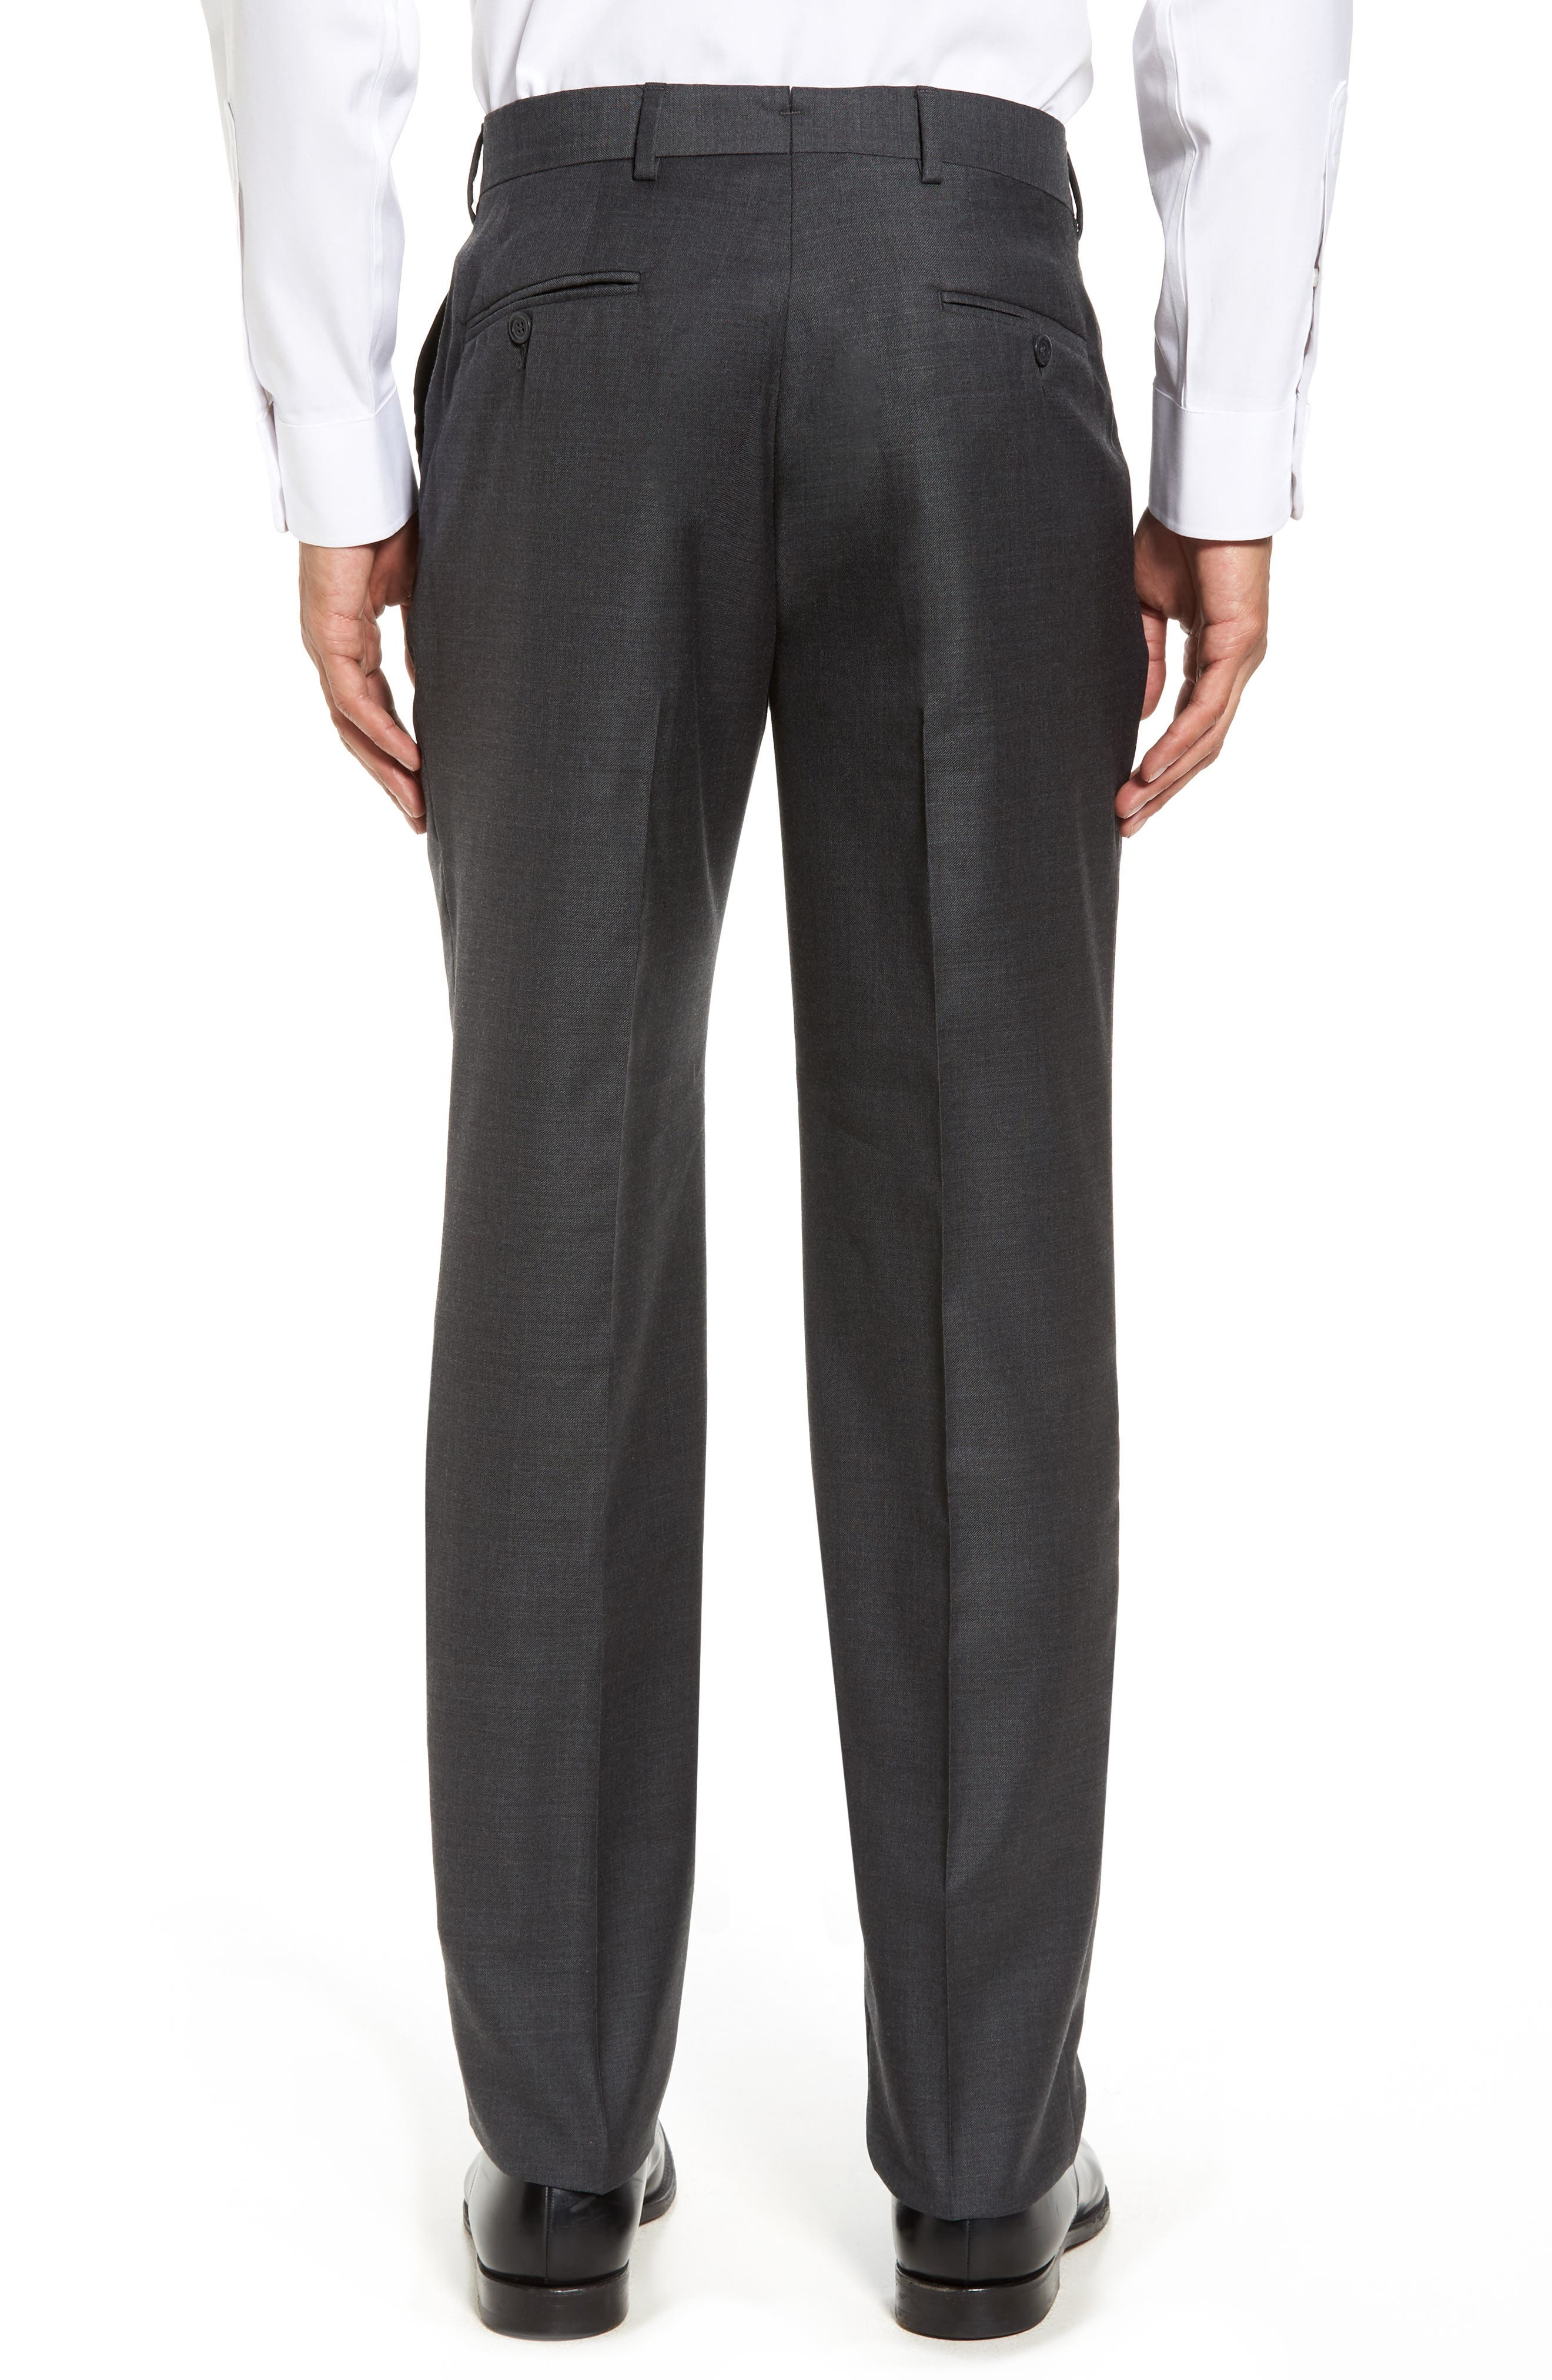 Flat Front Sharkskin Wool Trousers,                             Alternate thumbnail 2, color,                             Charcoal